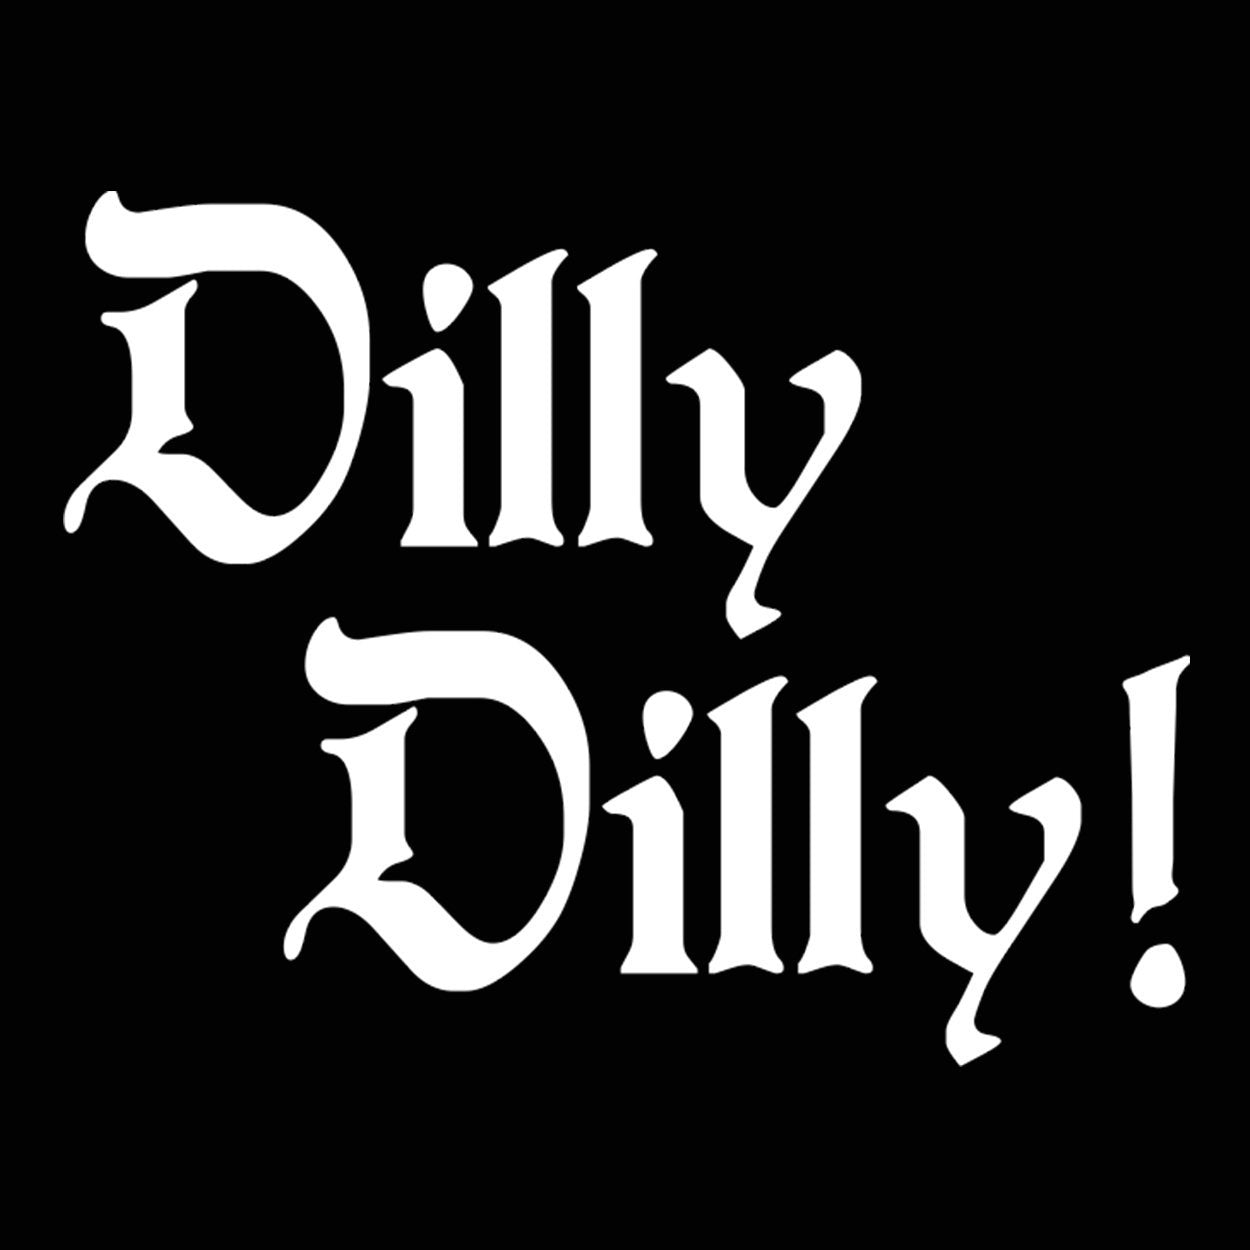 Dilly Dilly Beer Cheer - DonkeyTees